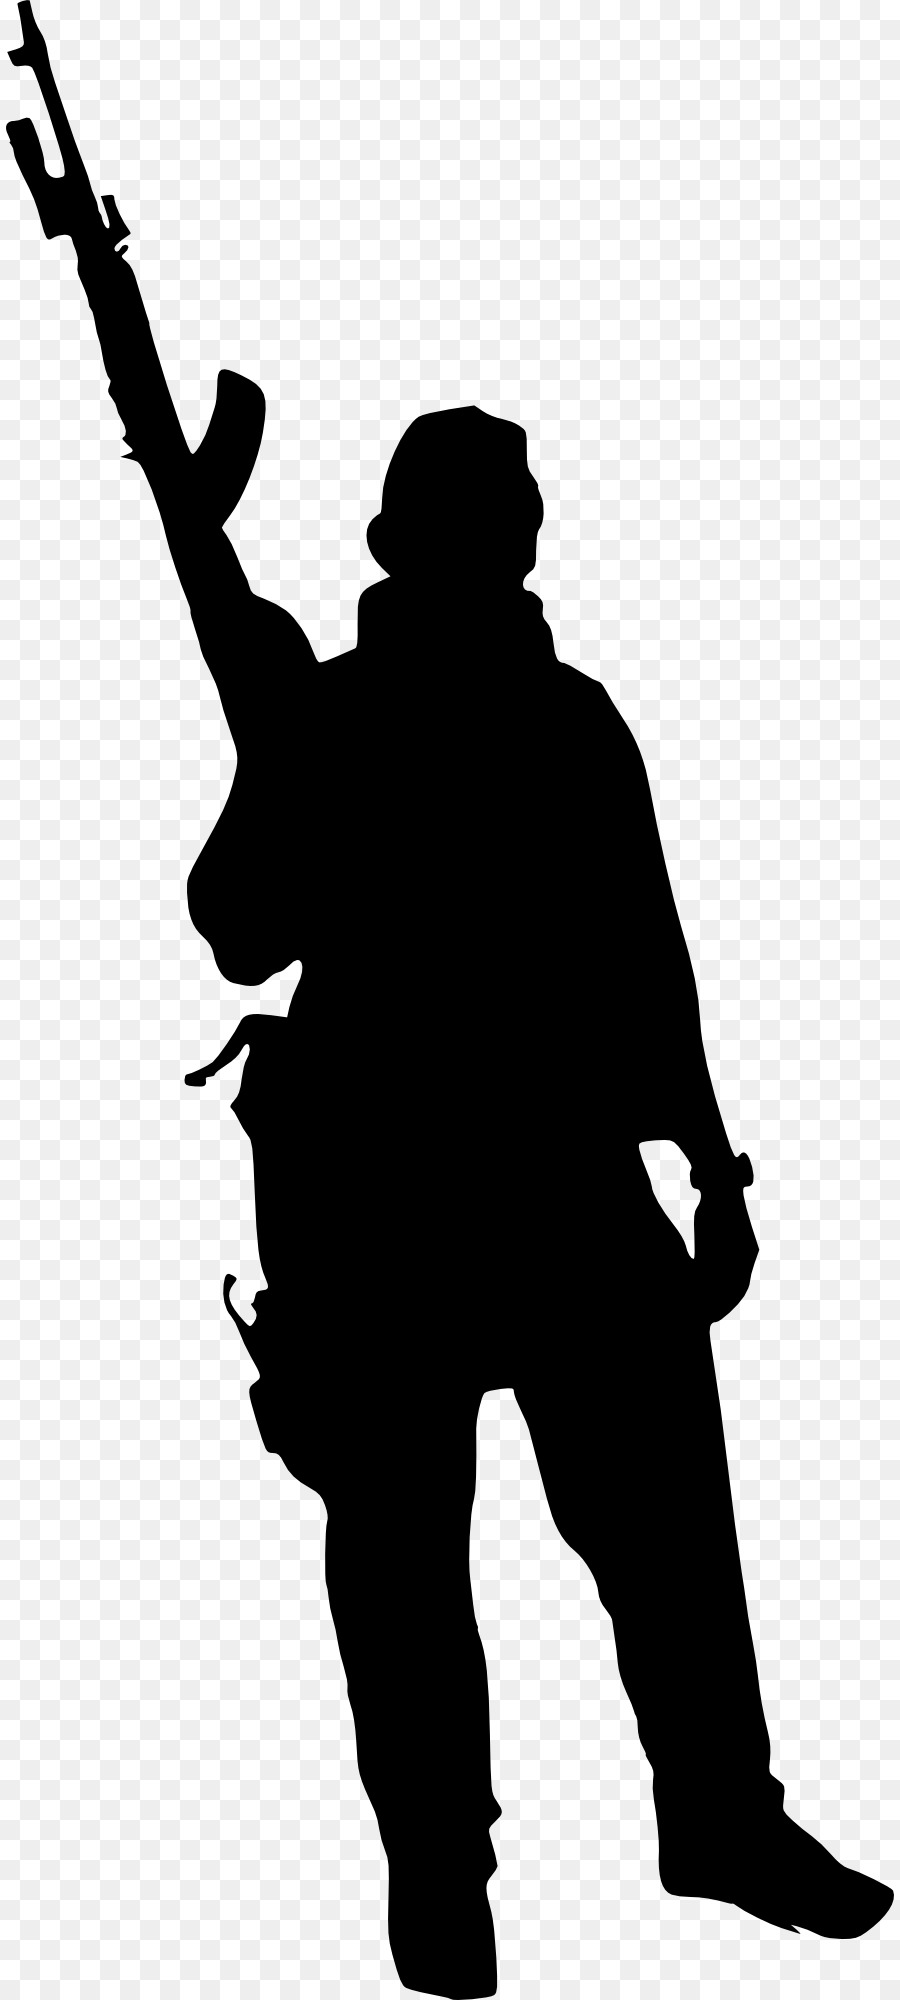 900x2000 Silhouette Soldier Military